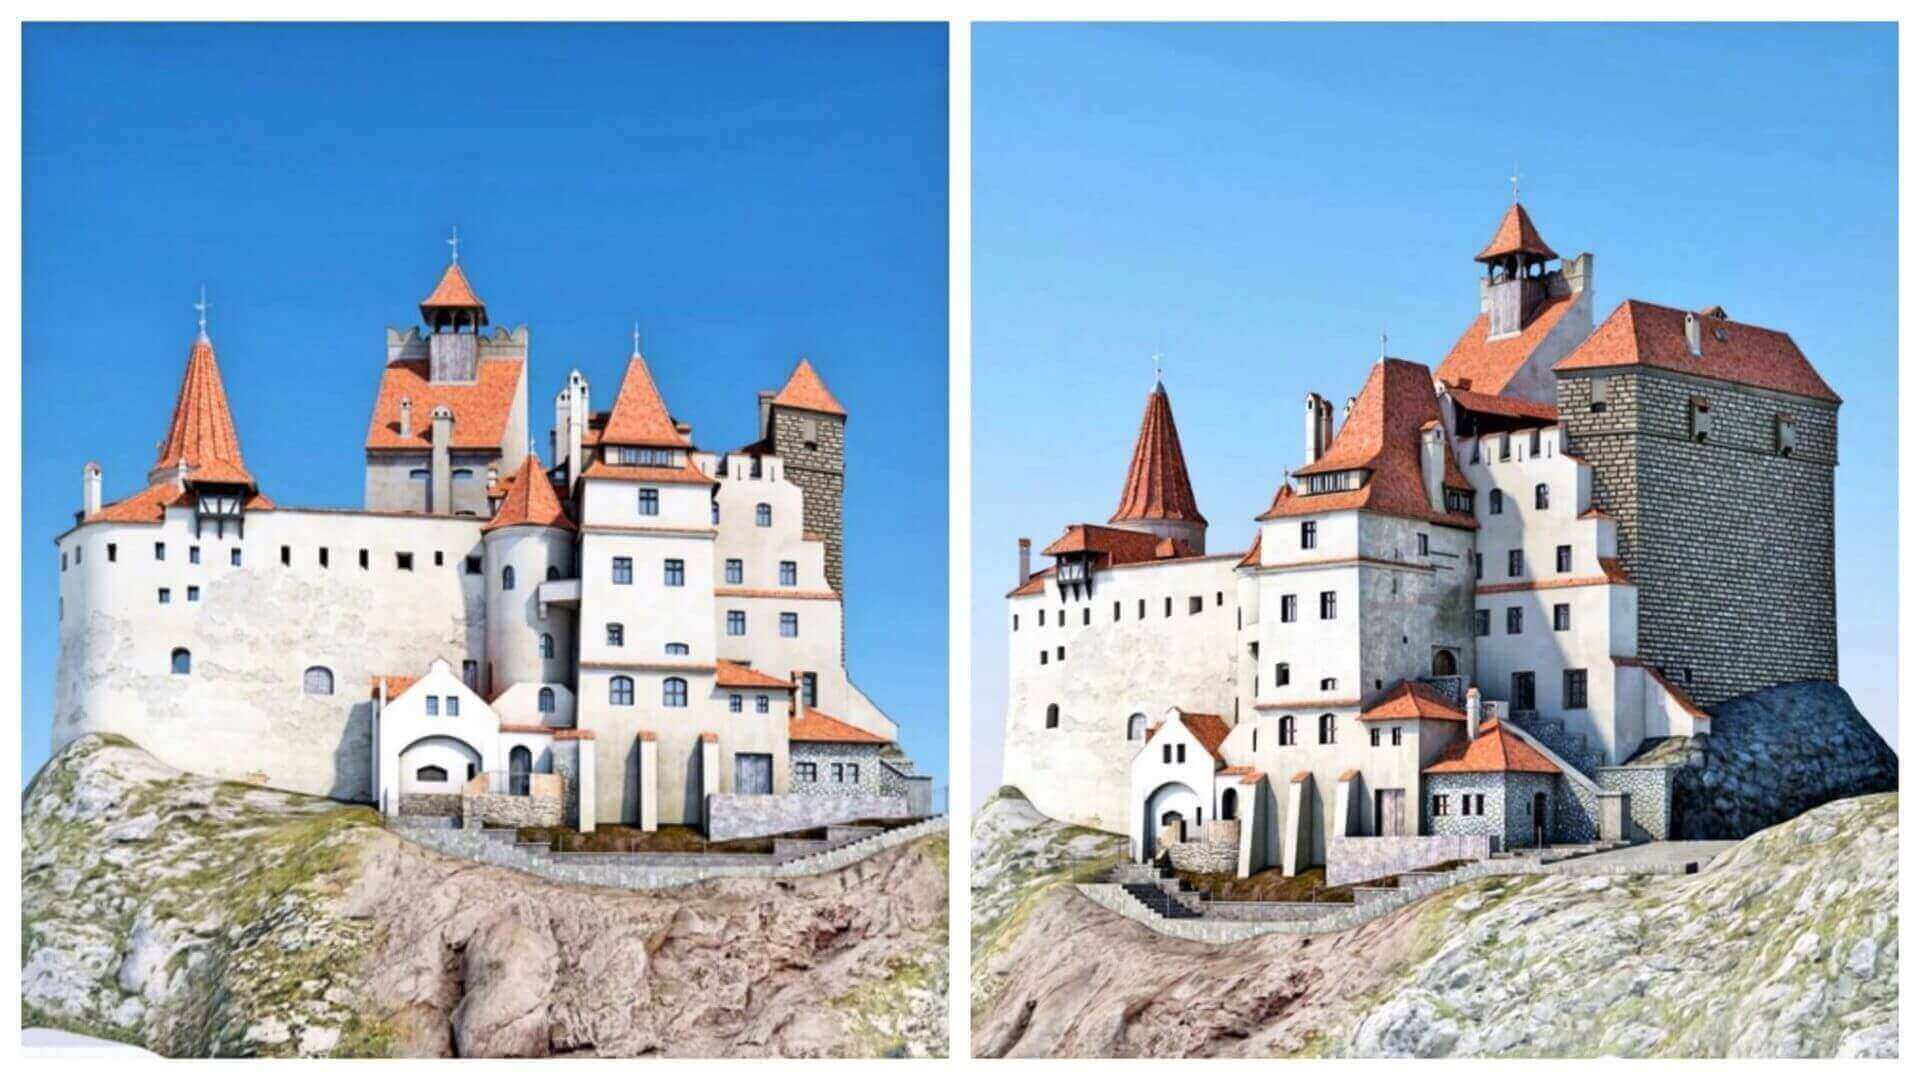 Full-Scale, 3D Printed Replica of Dracula's Castle is now on Kickstarter | All3DP